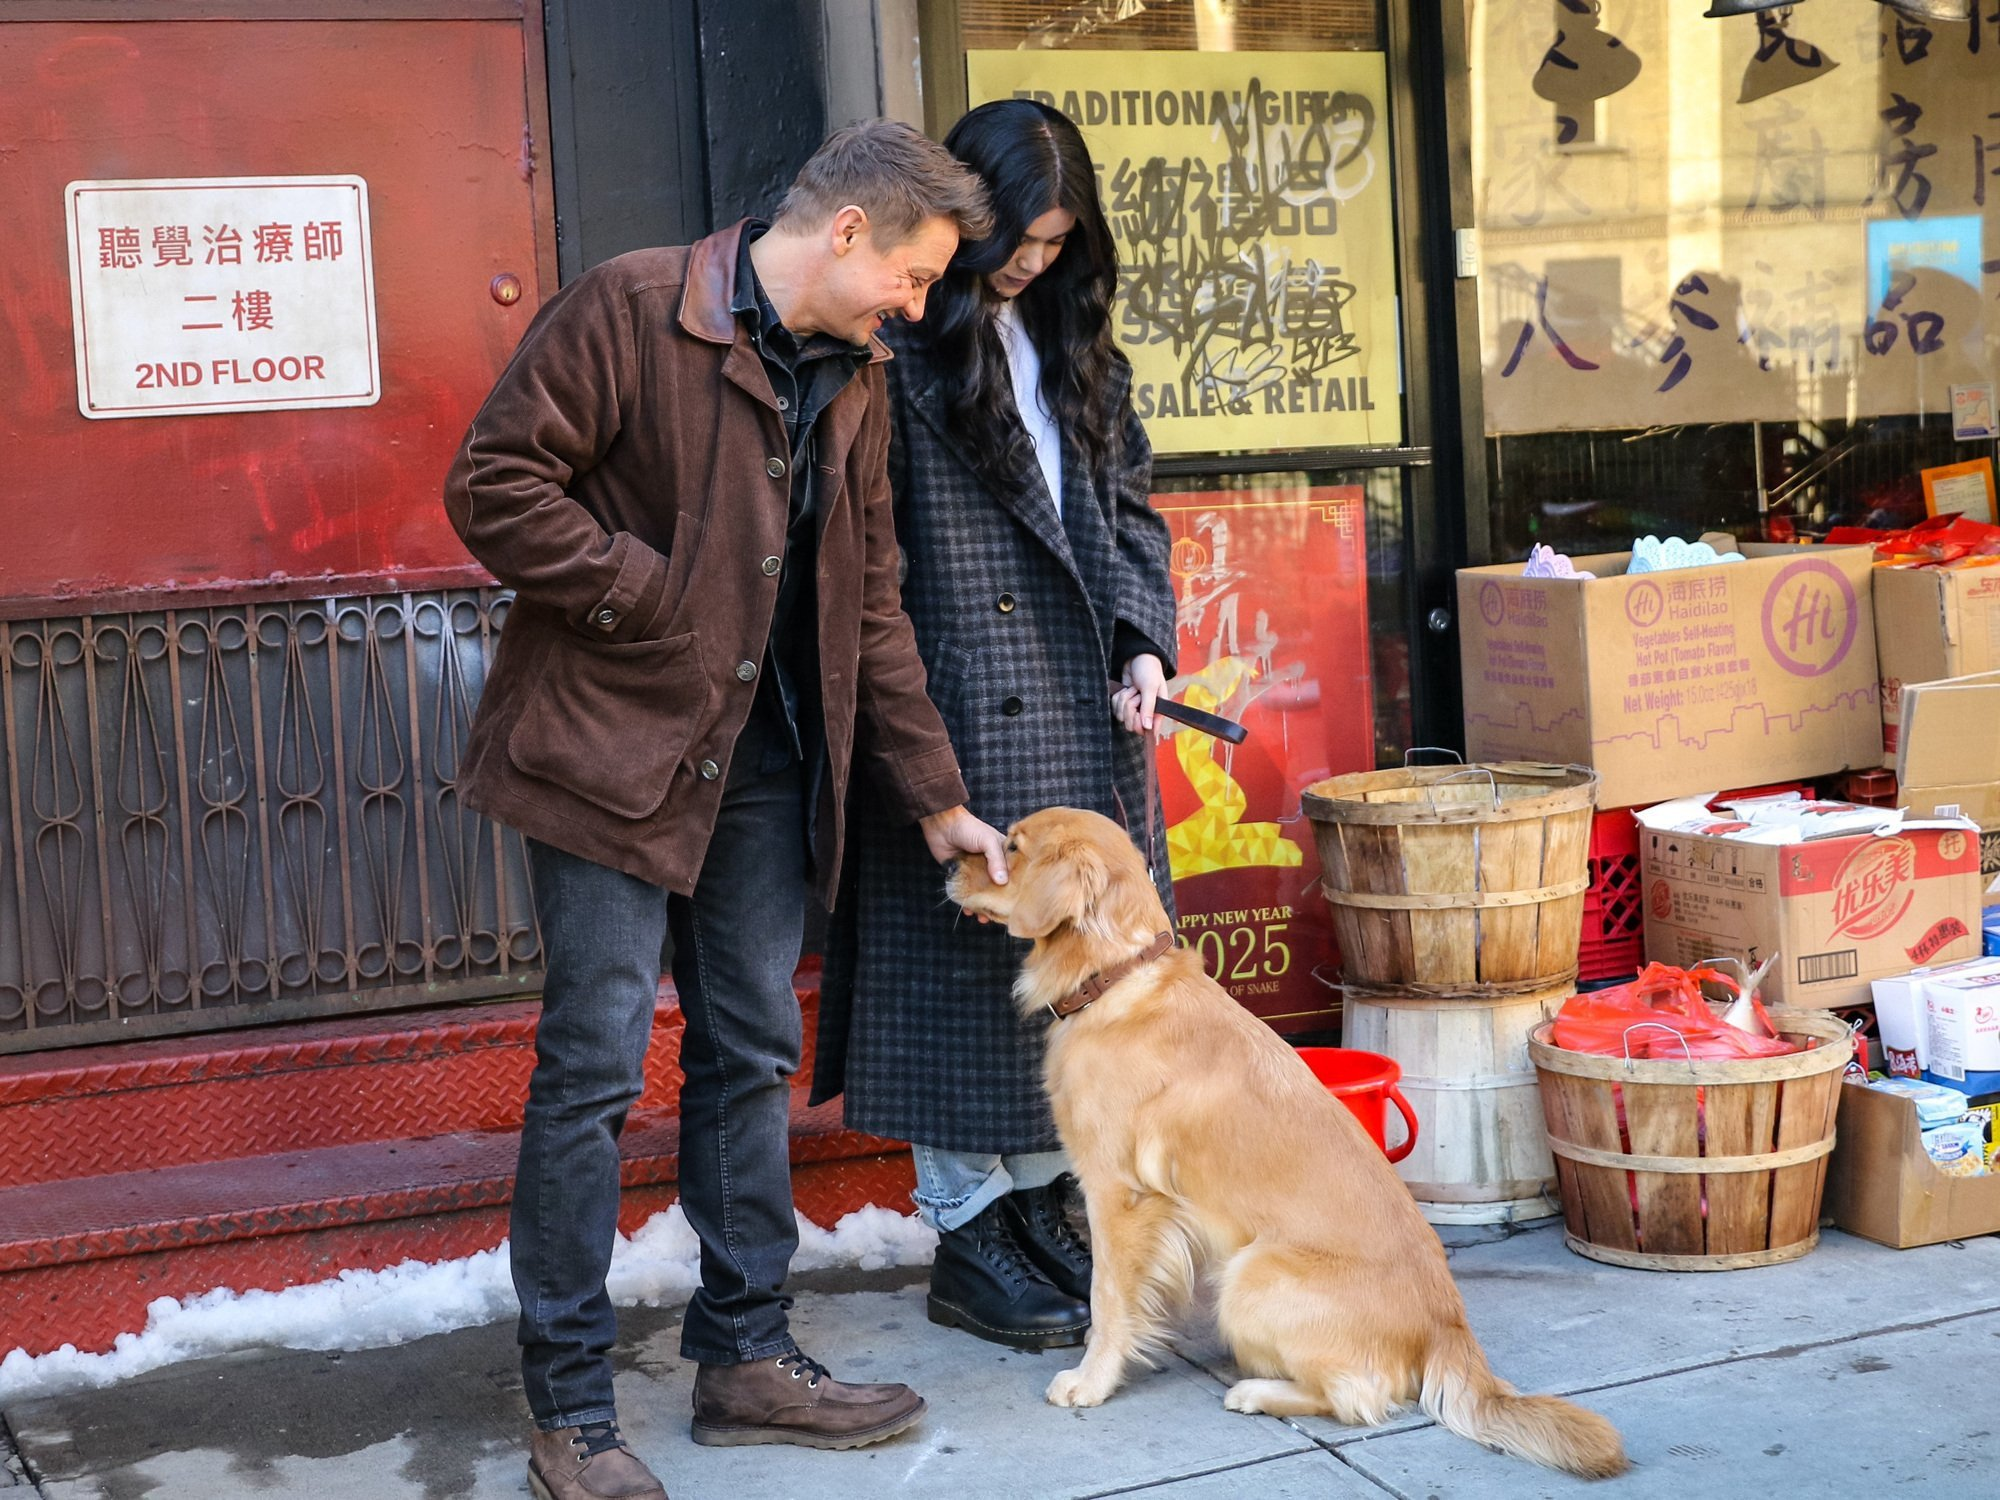 Photo du tournage de la série Disney+, Hawkeye, à Brooklyn, New York, avec Jeremy Renner alias Clint Barton et Hailee Steinfeld alias Kate Bishop montrant que la série se déroule fin 2024